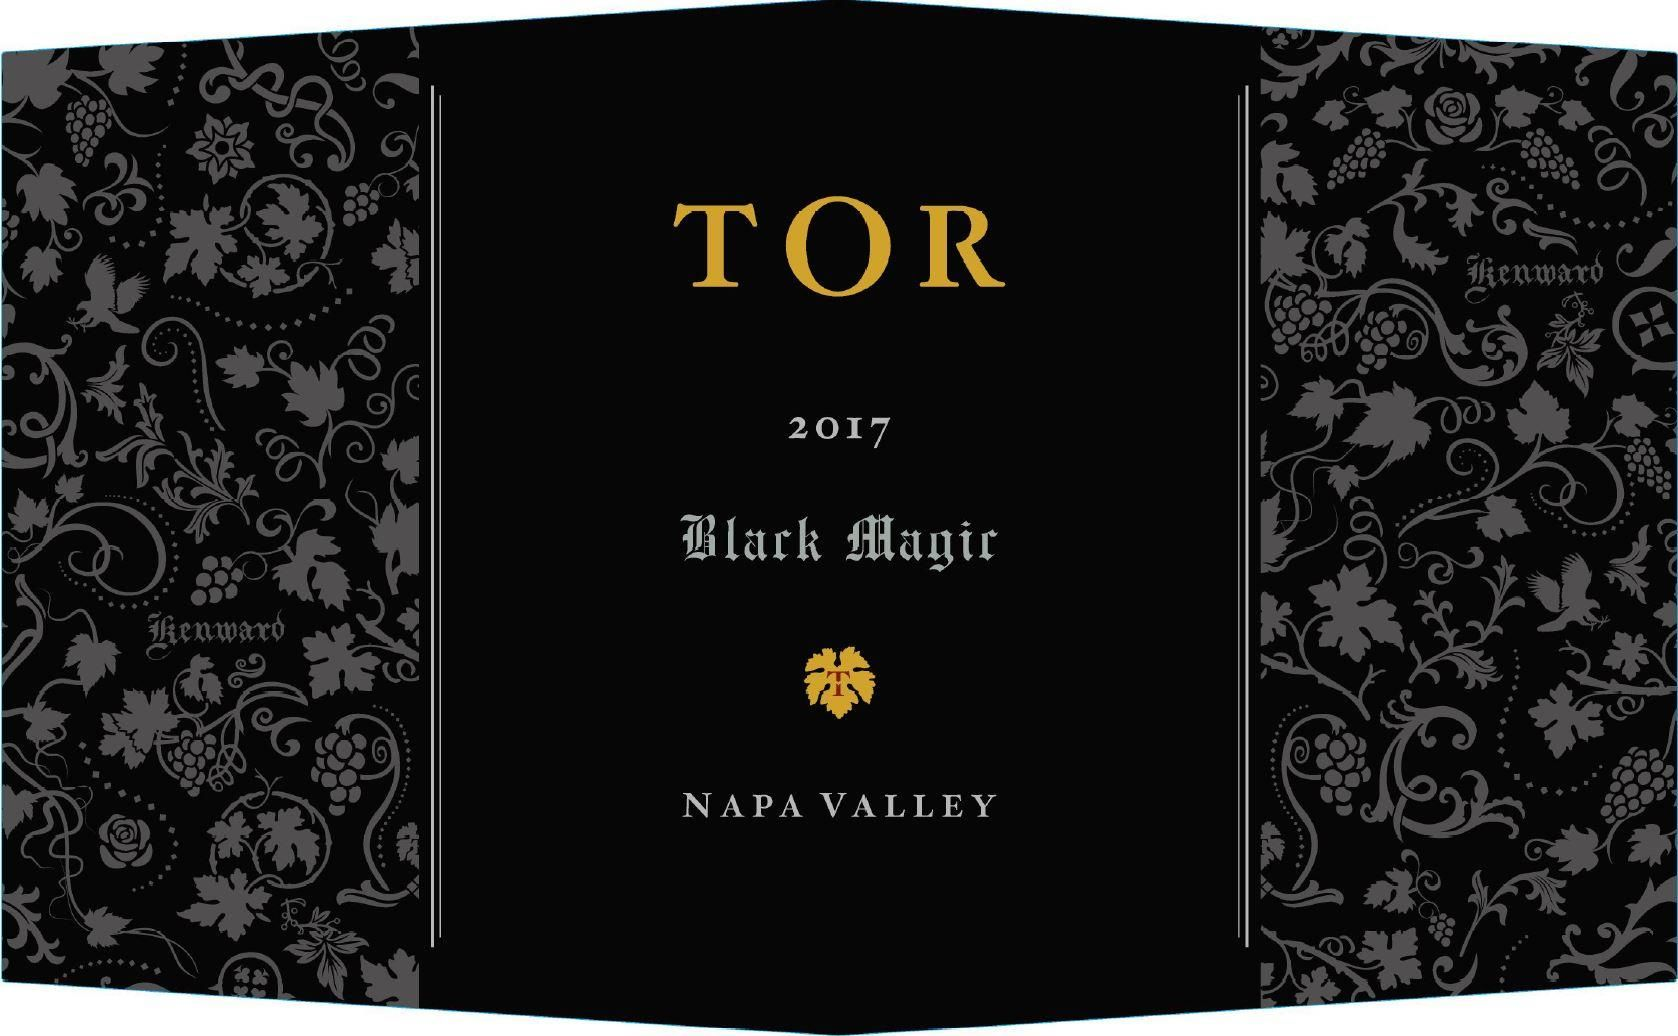 TOR Black Magic Cabernet Sauvignon 2017  Front Label